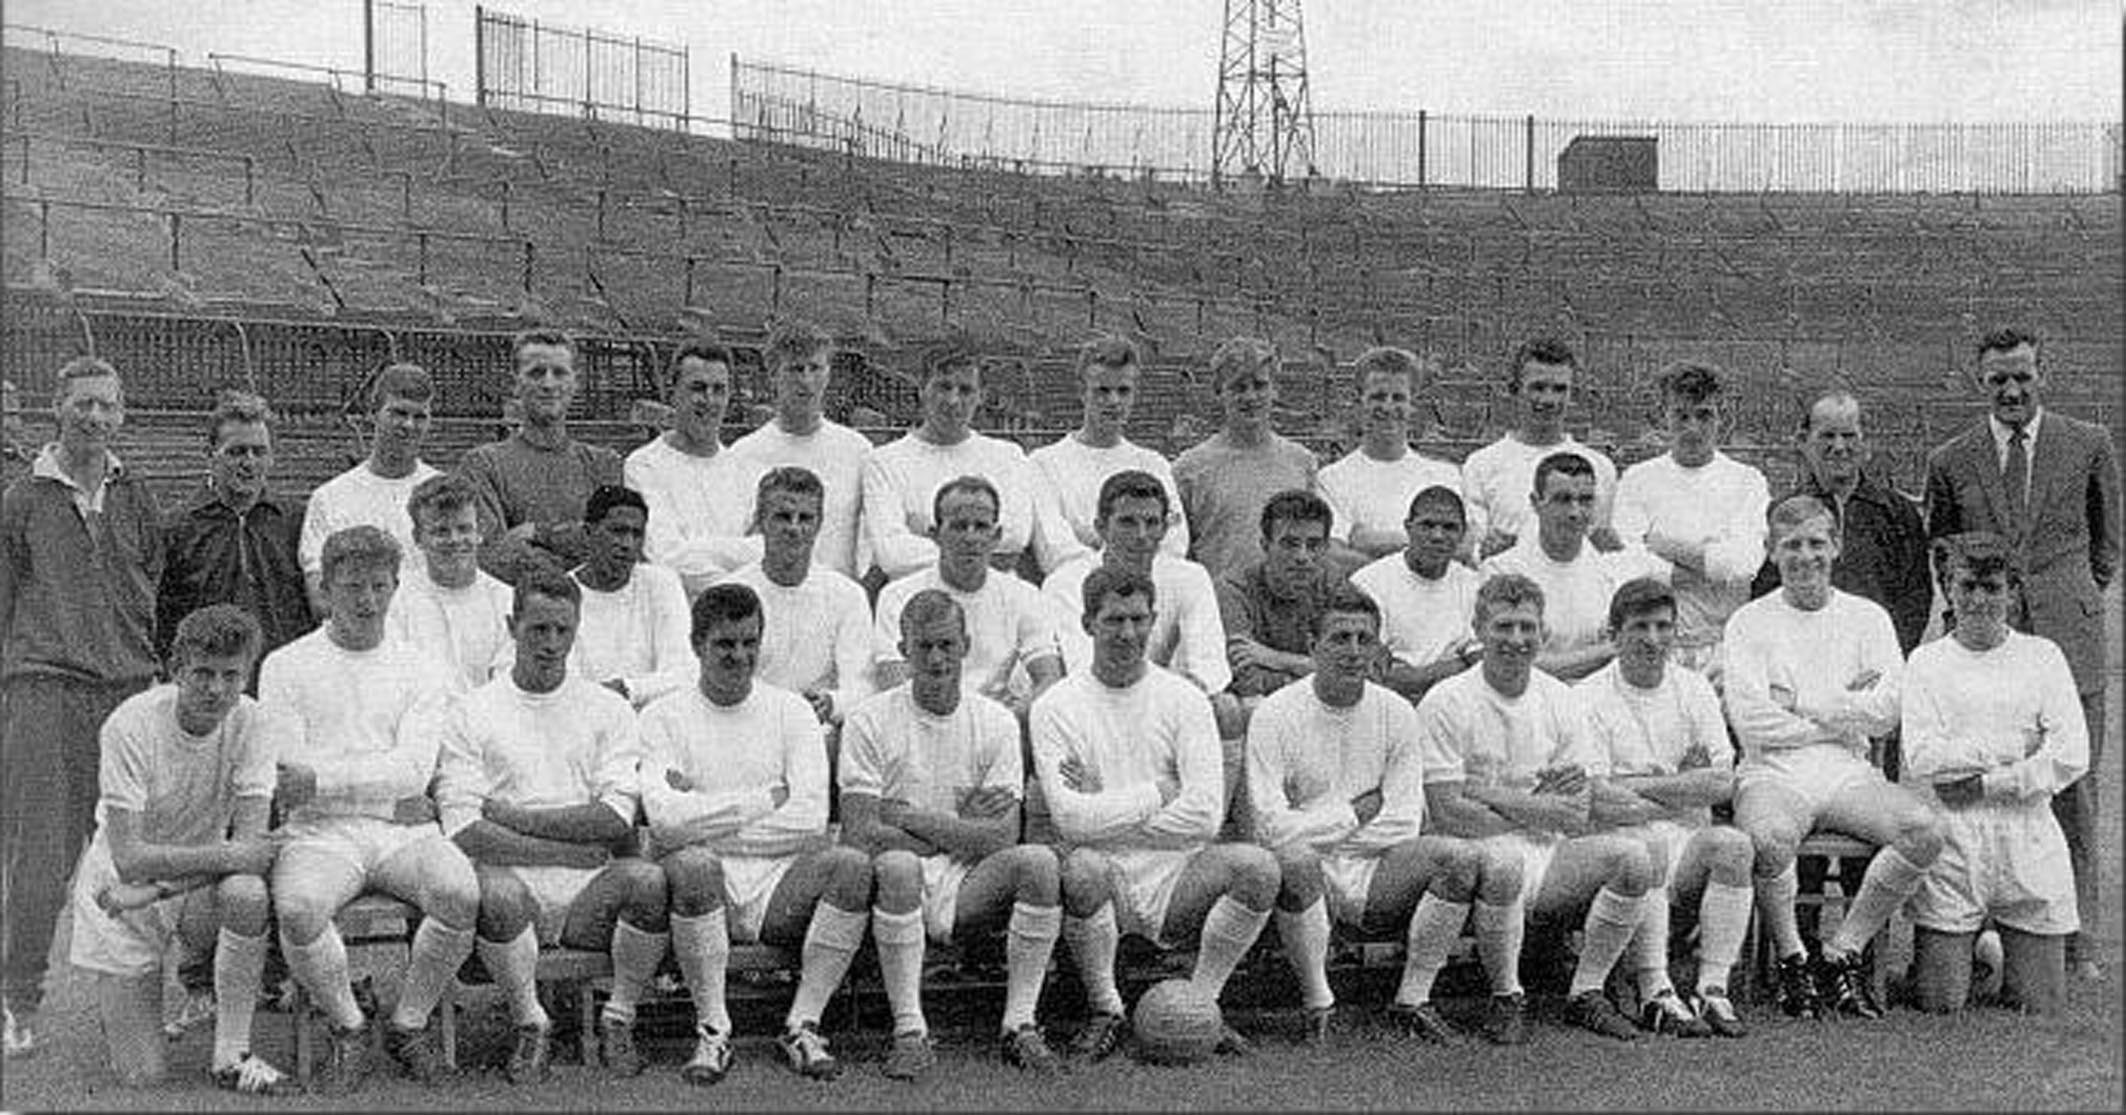 Leeds United was great during the decades of 60 and 70's.